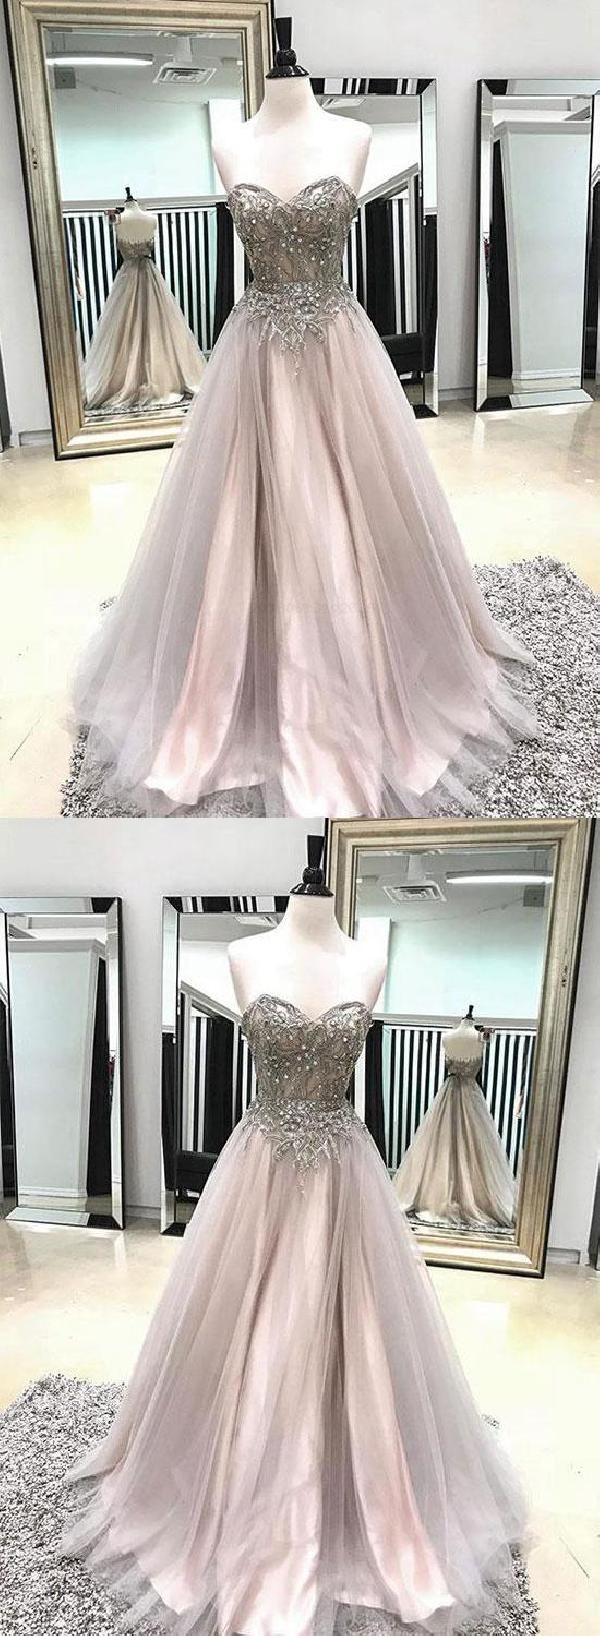 Black lace dress 3/4 sleeve may 2019  best dresses images on Pinterest  Ball gown Dress prom and